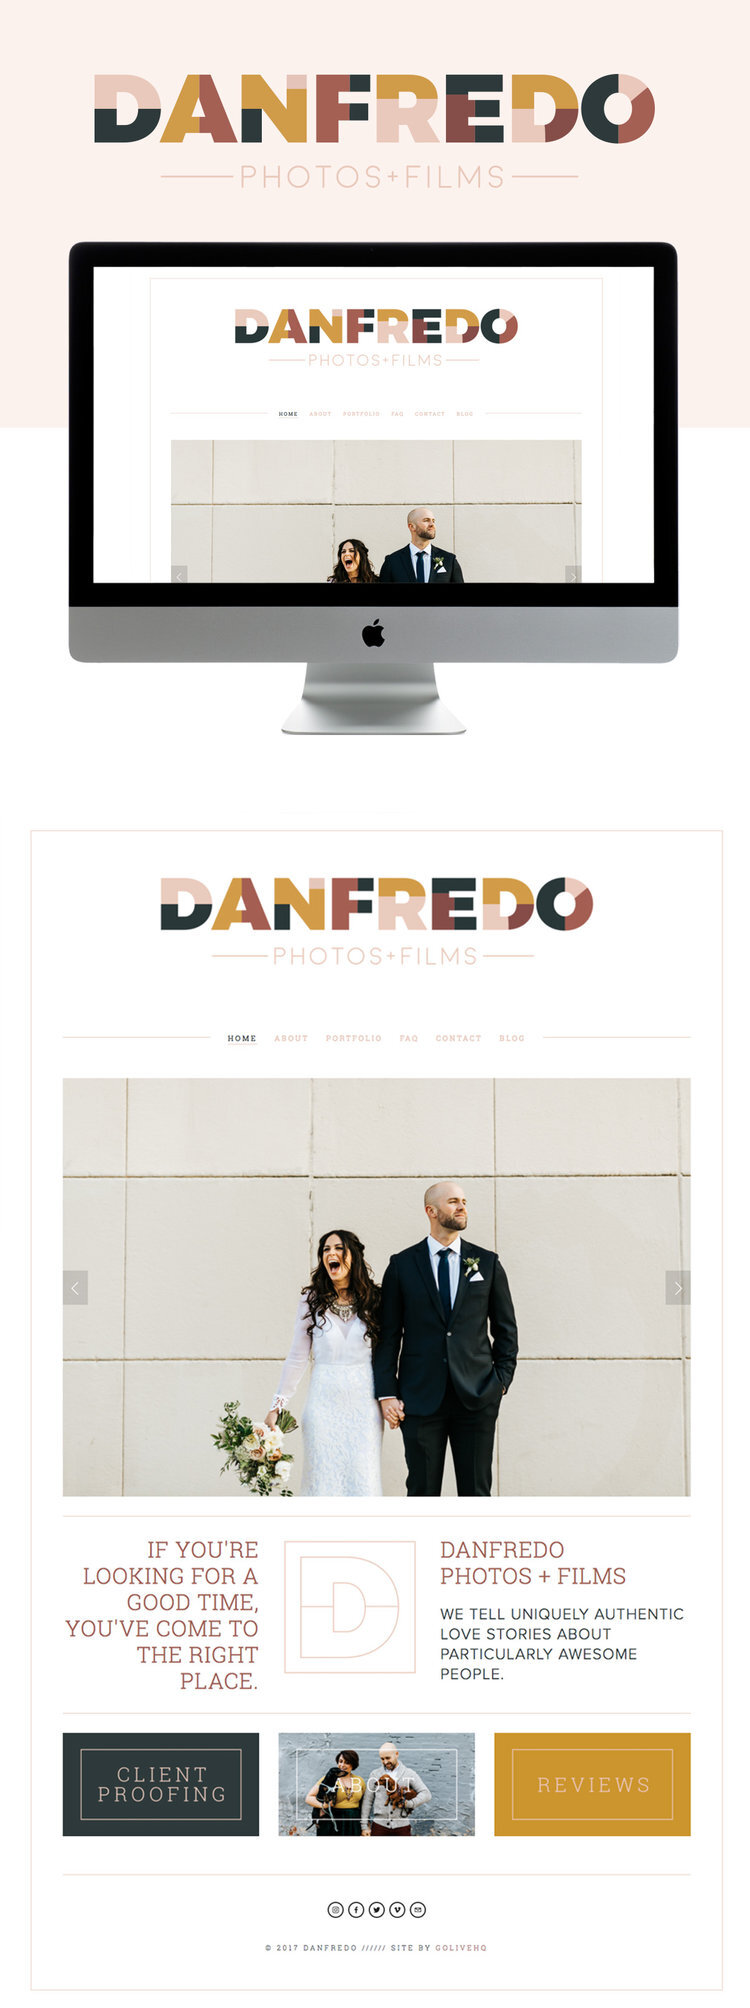 Danfredo+Is+LIVE+on+Squarespace+_+By+Go+Live+HQ (1).jpg